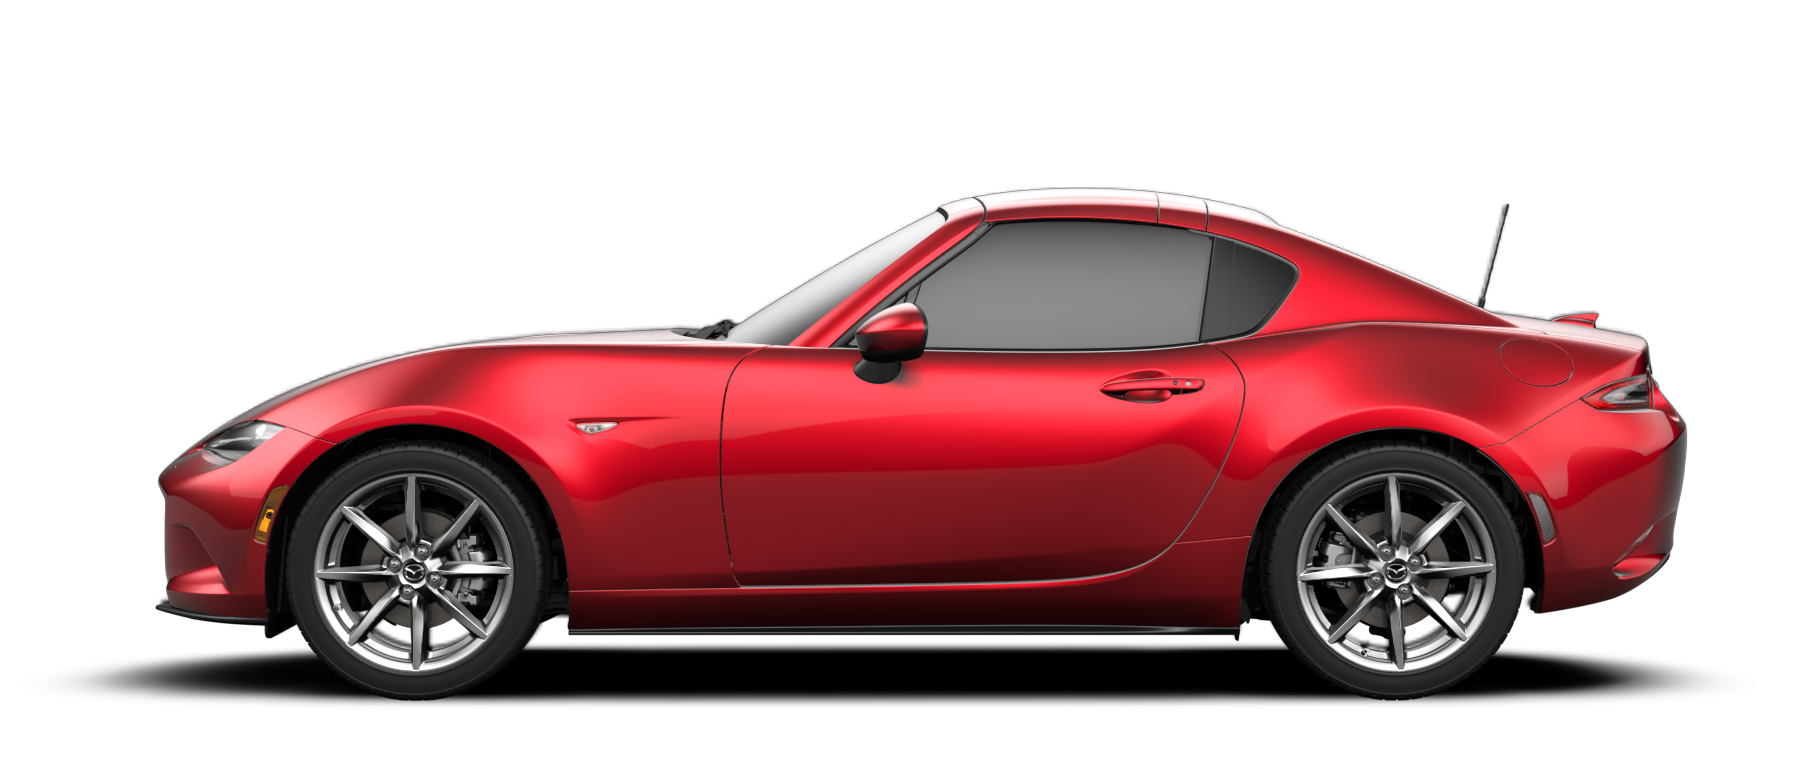 High Quality 2018 Mazda MX 5 Miata RF Image